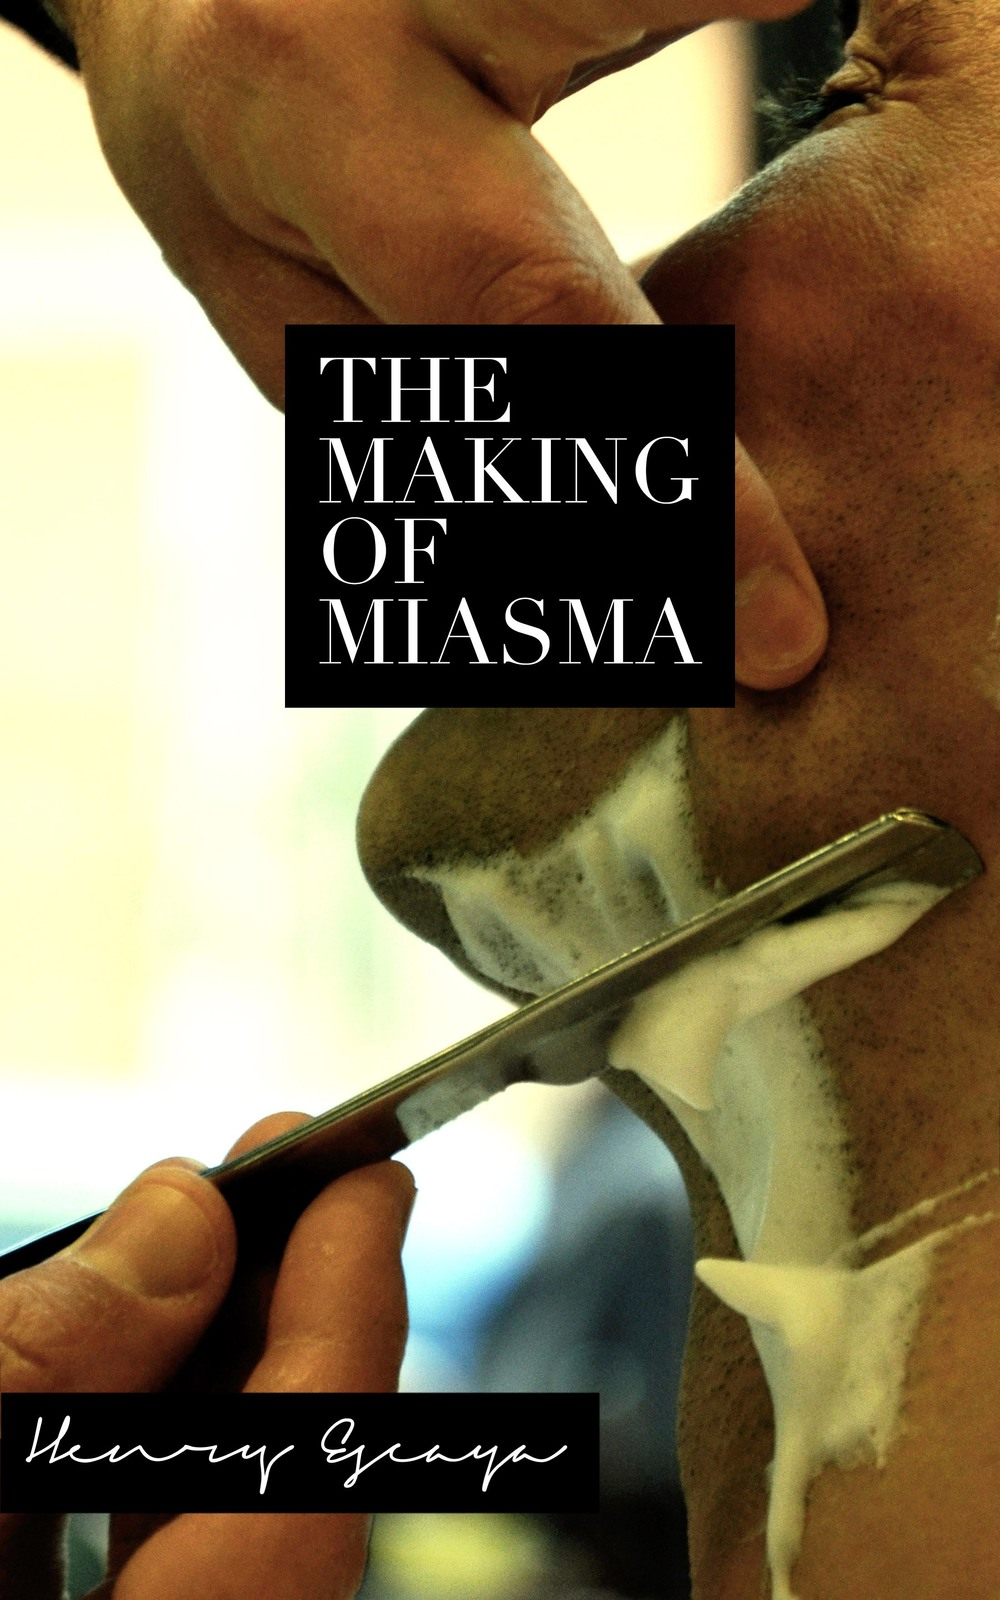 THE MAKING OF MIASMA by Henry Escaya